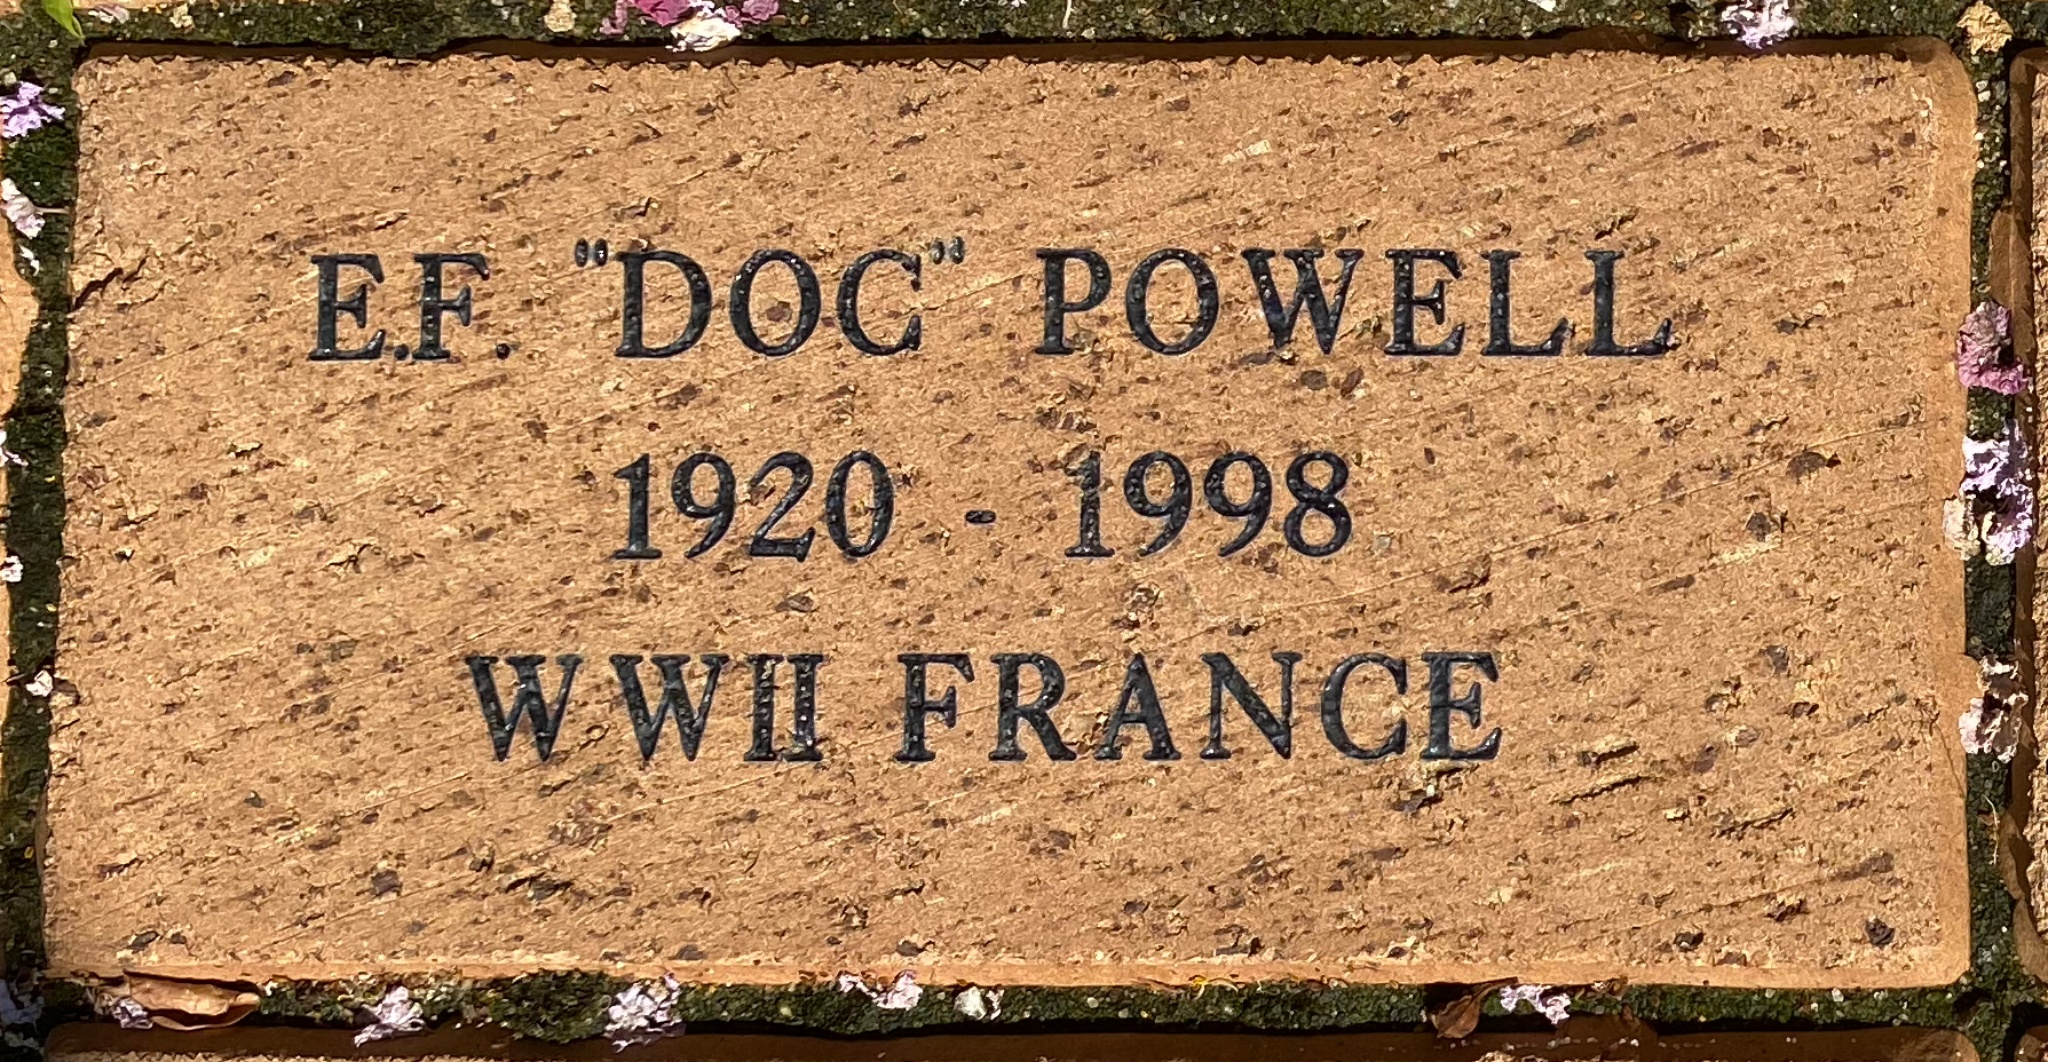 "E.F. ""DOC"" POWELL 1920 – 1998 WWII FRANCE"